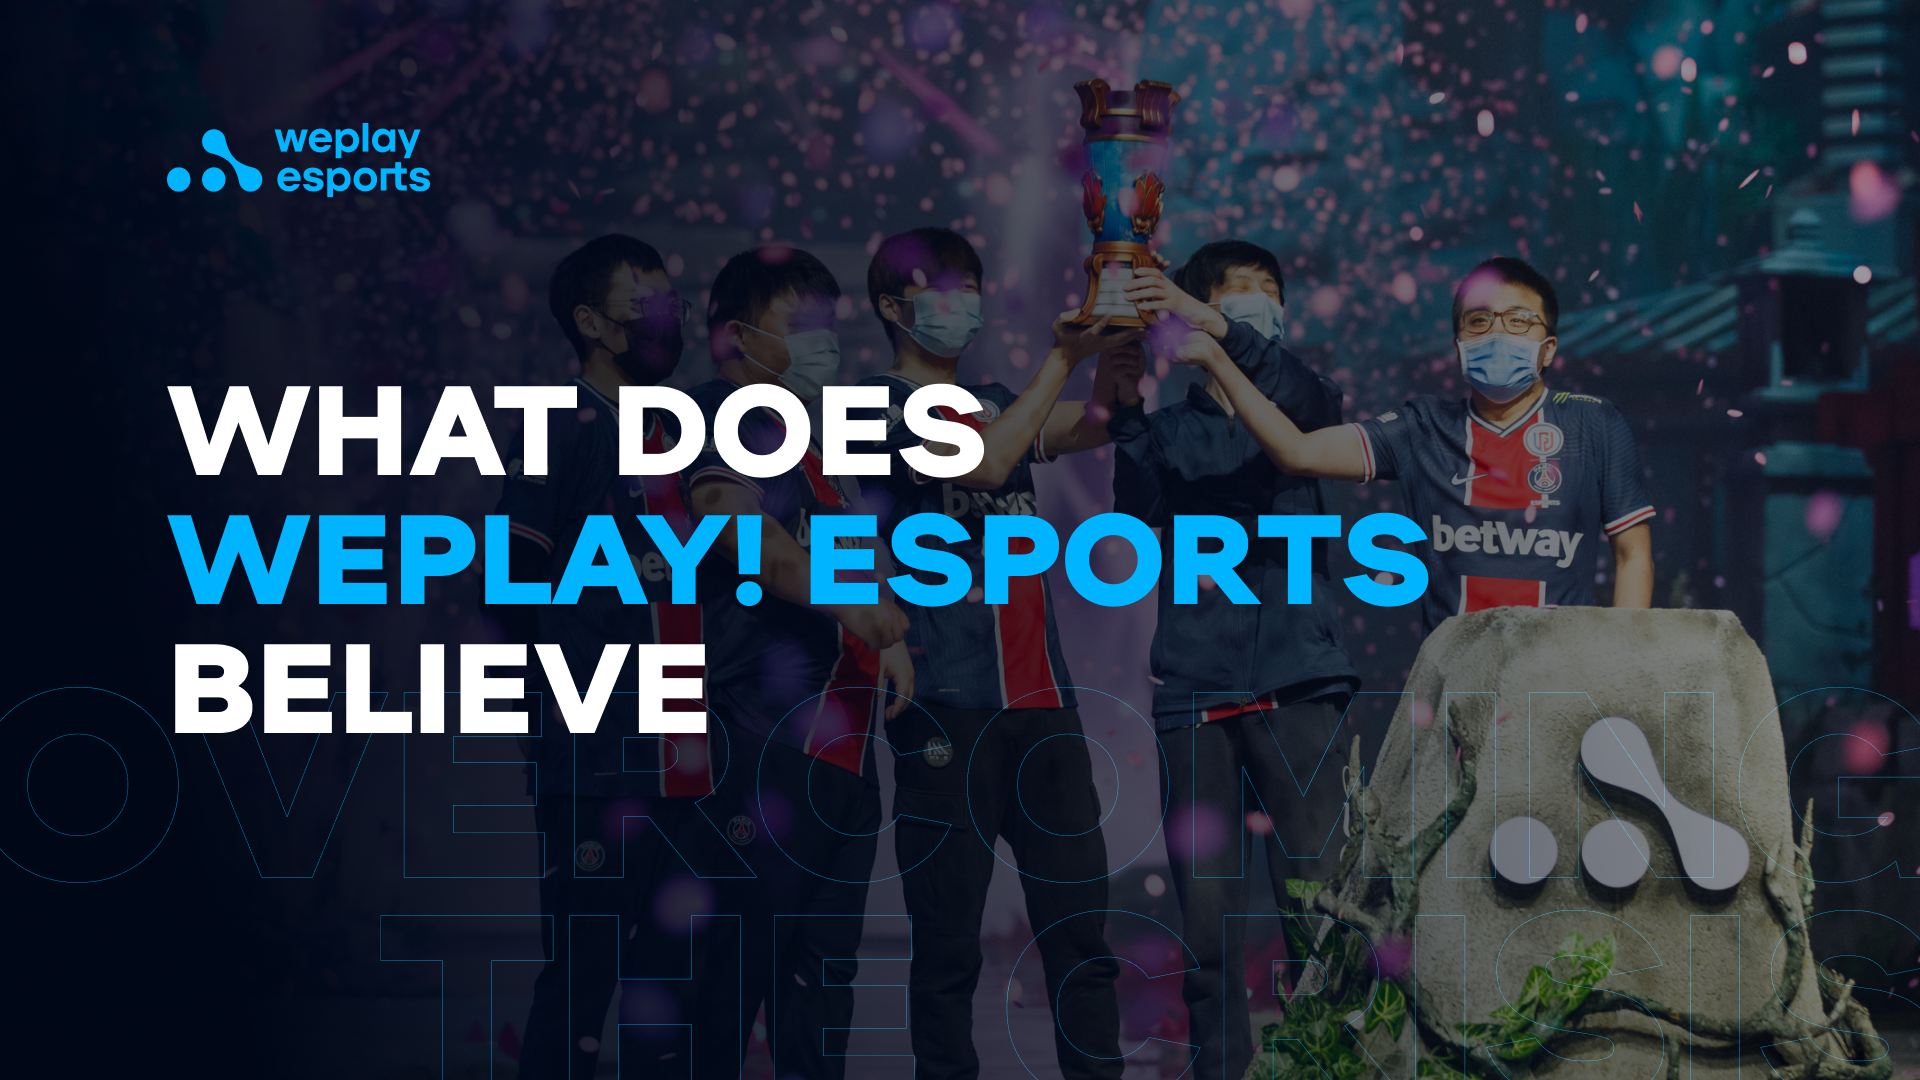 What does WePlay! Esports believe